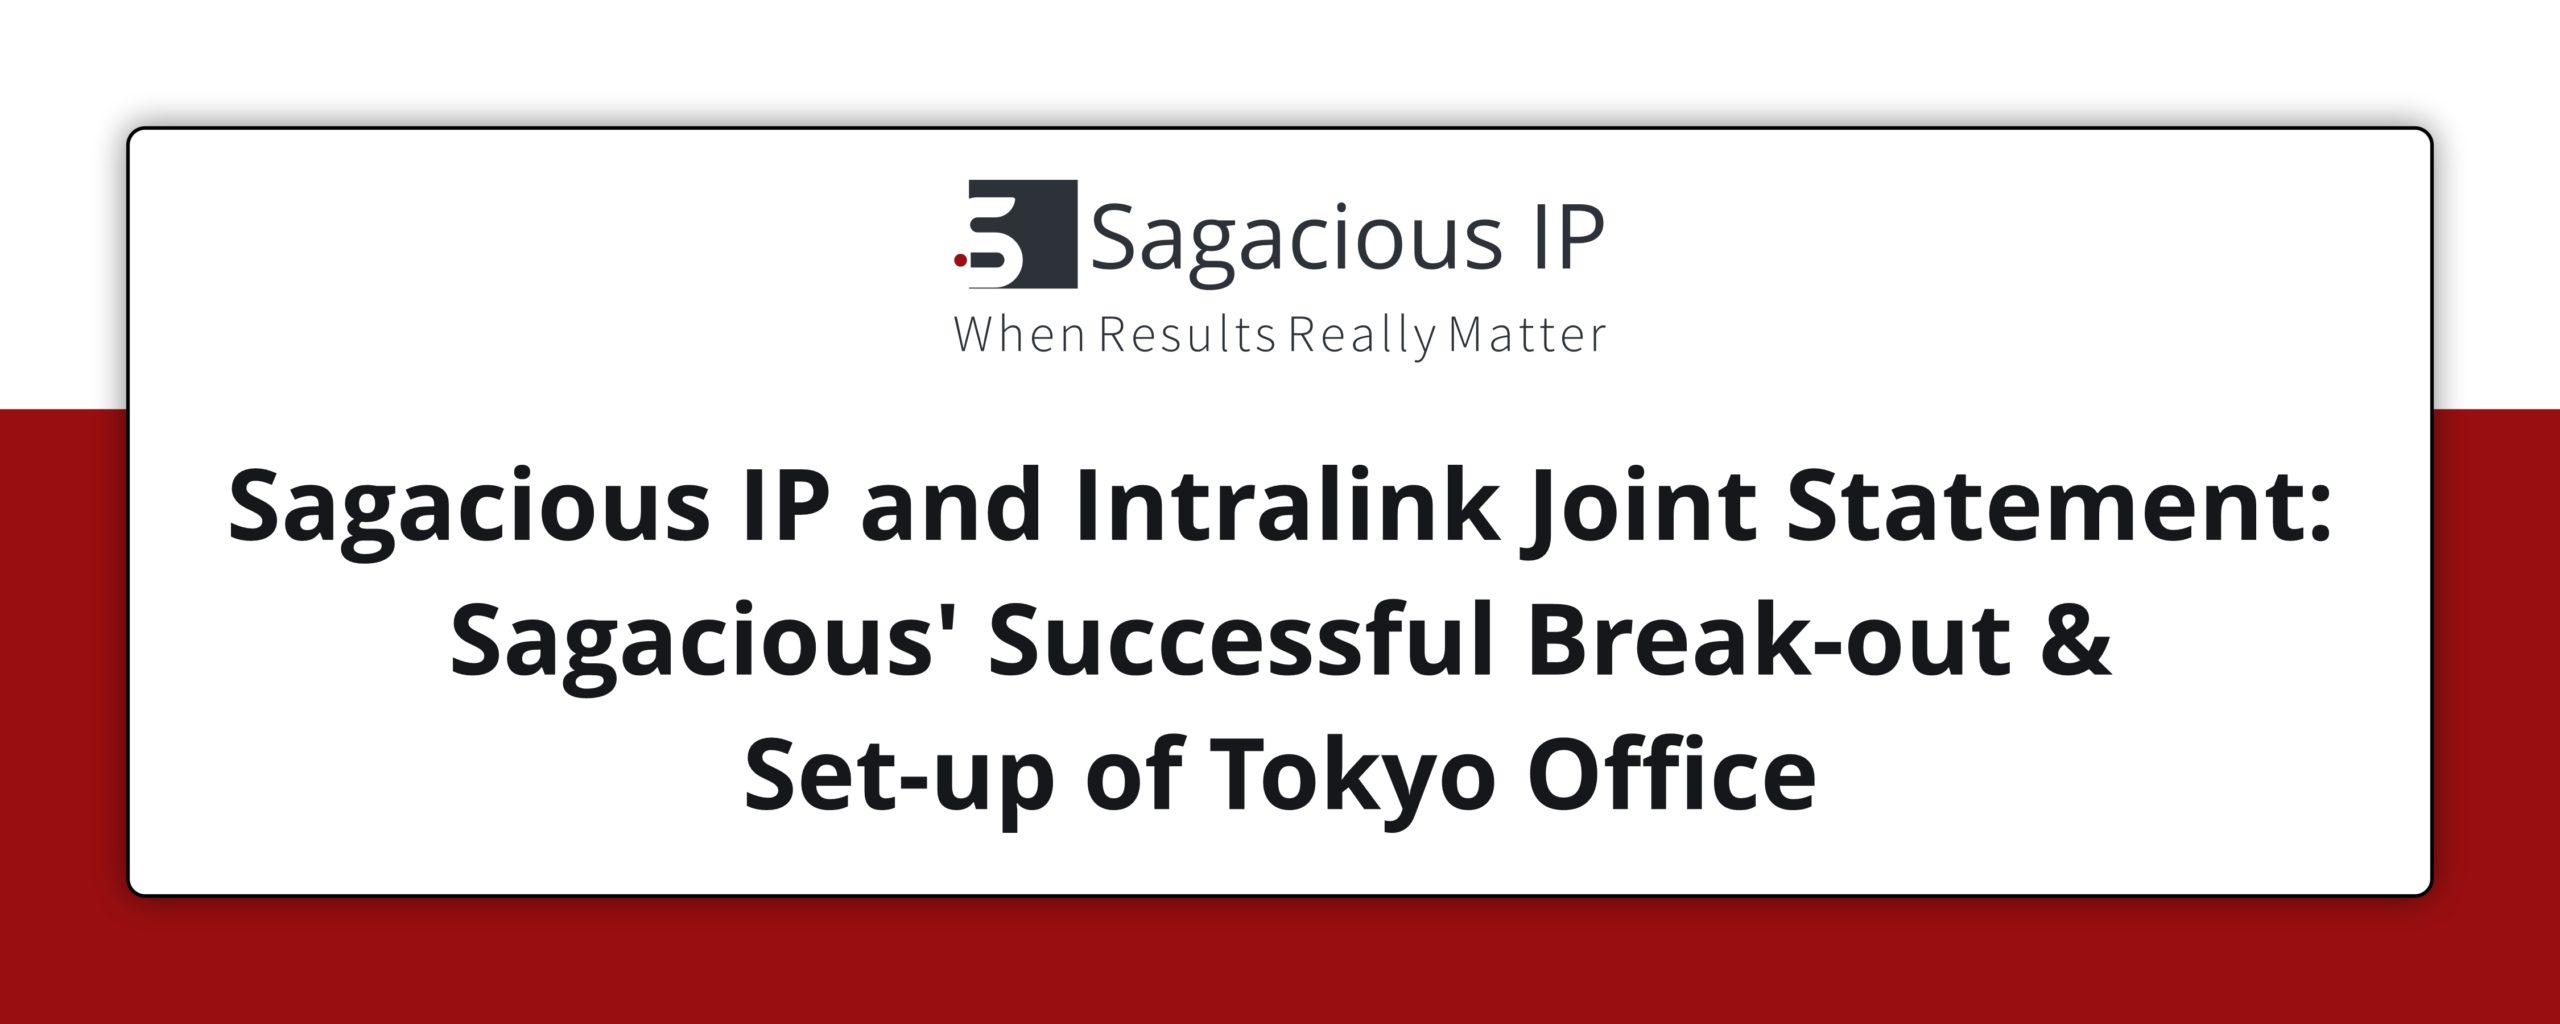 Press Release - Sagacious IP and Intralink Joint Statement: Sagacious' Successful Break-out & Set-up of Tokyo Office